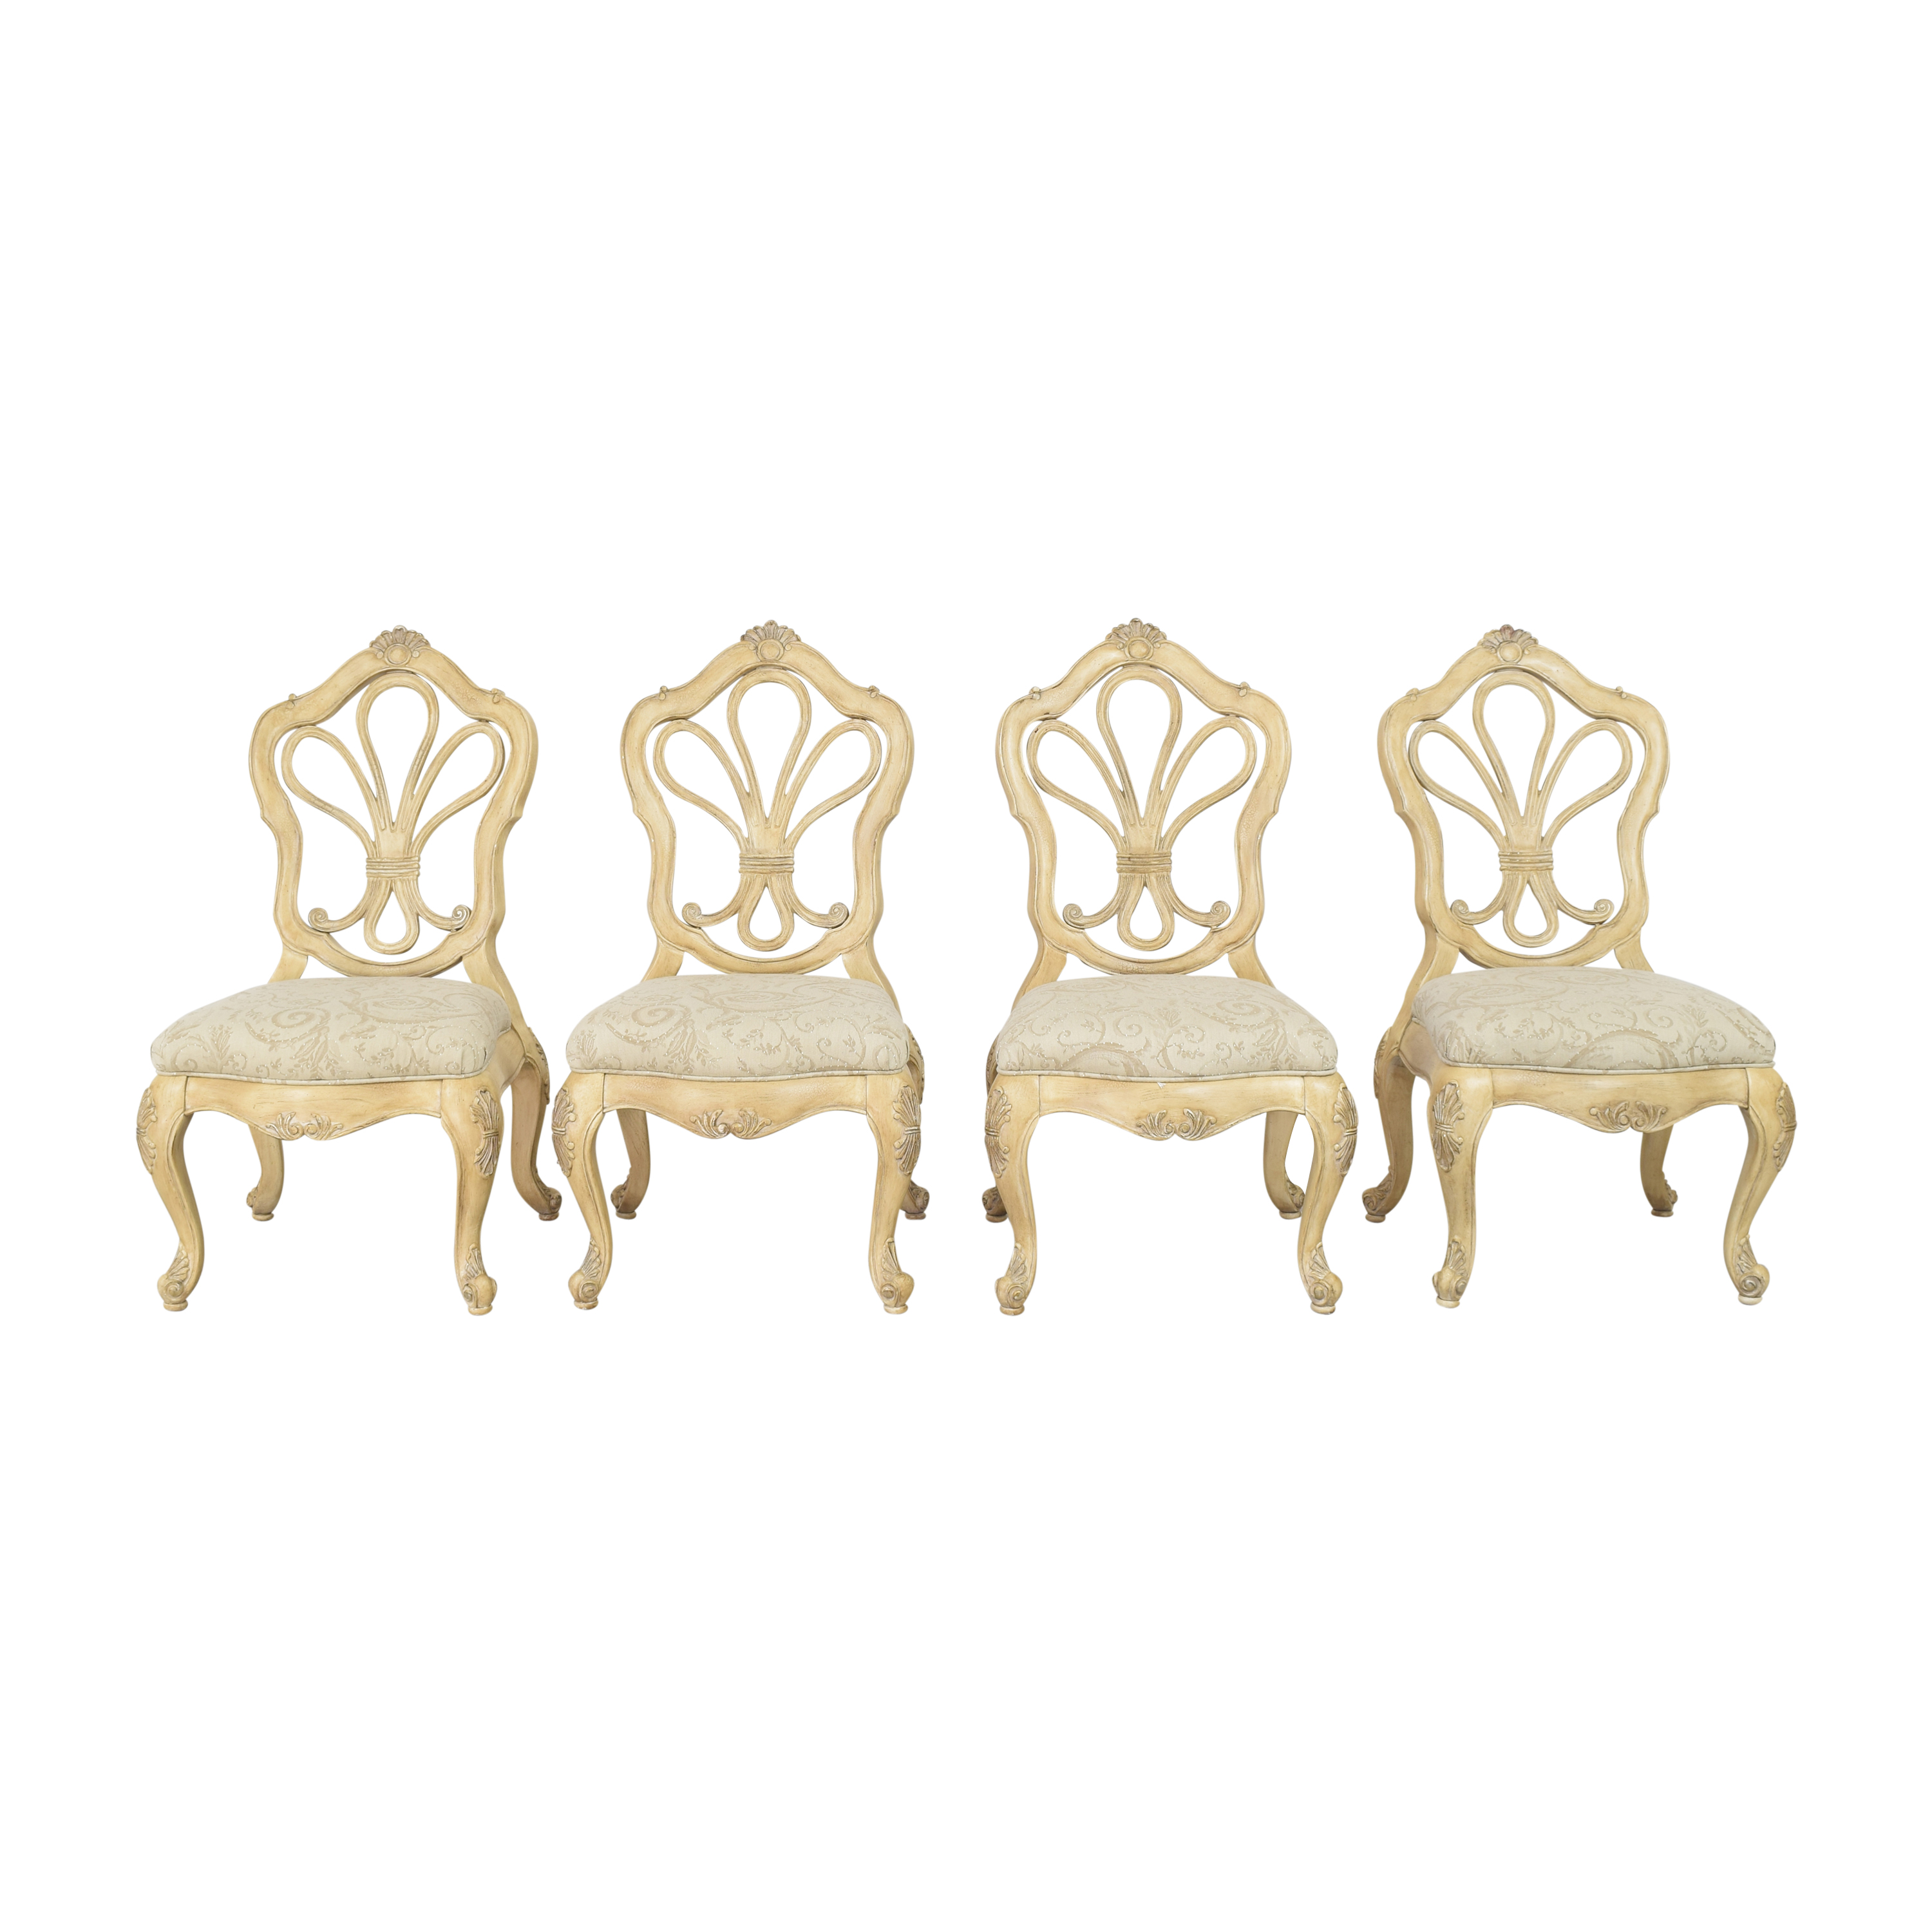 Schnadig Schnadig Upholstered Dining Chairs Dining Chairs